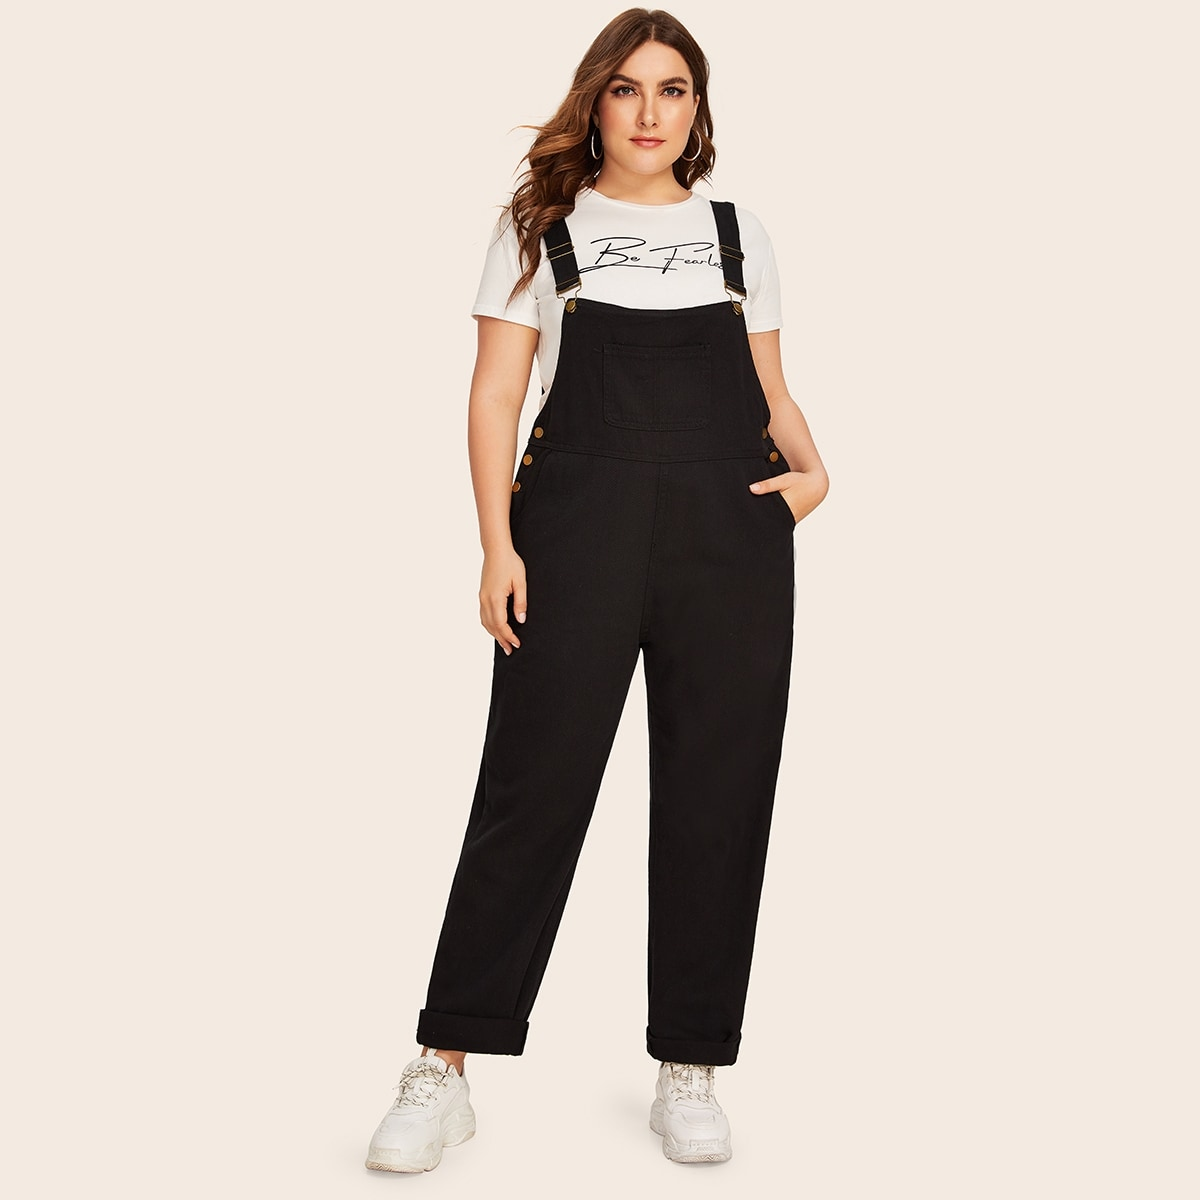 Plus Button Decoration Pocket Denim Overalls in Black by ROMWE on GOOFASH